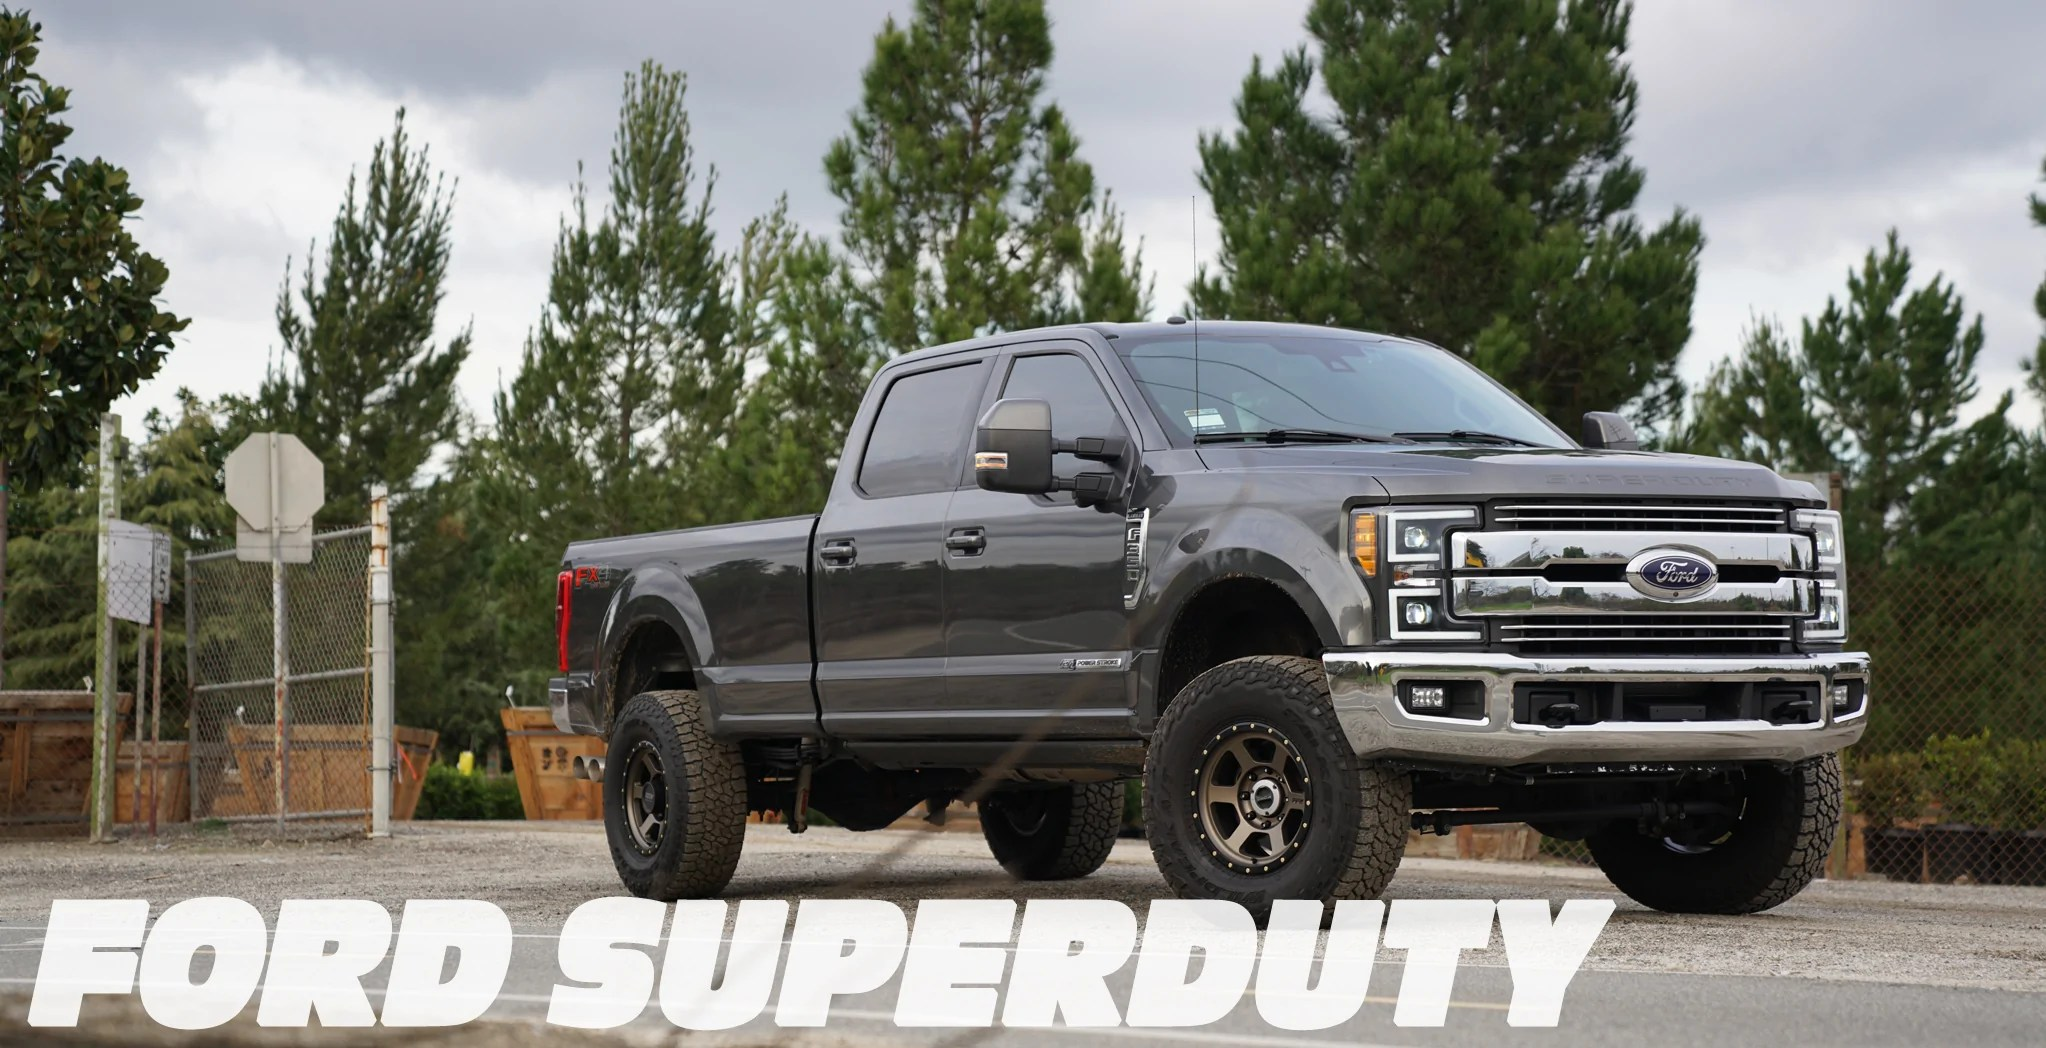 all the parts and upgrades you ll need for your ford f250 f350 superduty including 17 and 20 inch wheels in a 8x170 bolt pattern with a heavy duty load  [ 2046 x 1048 Pixel ]